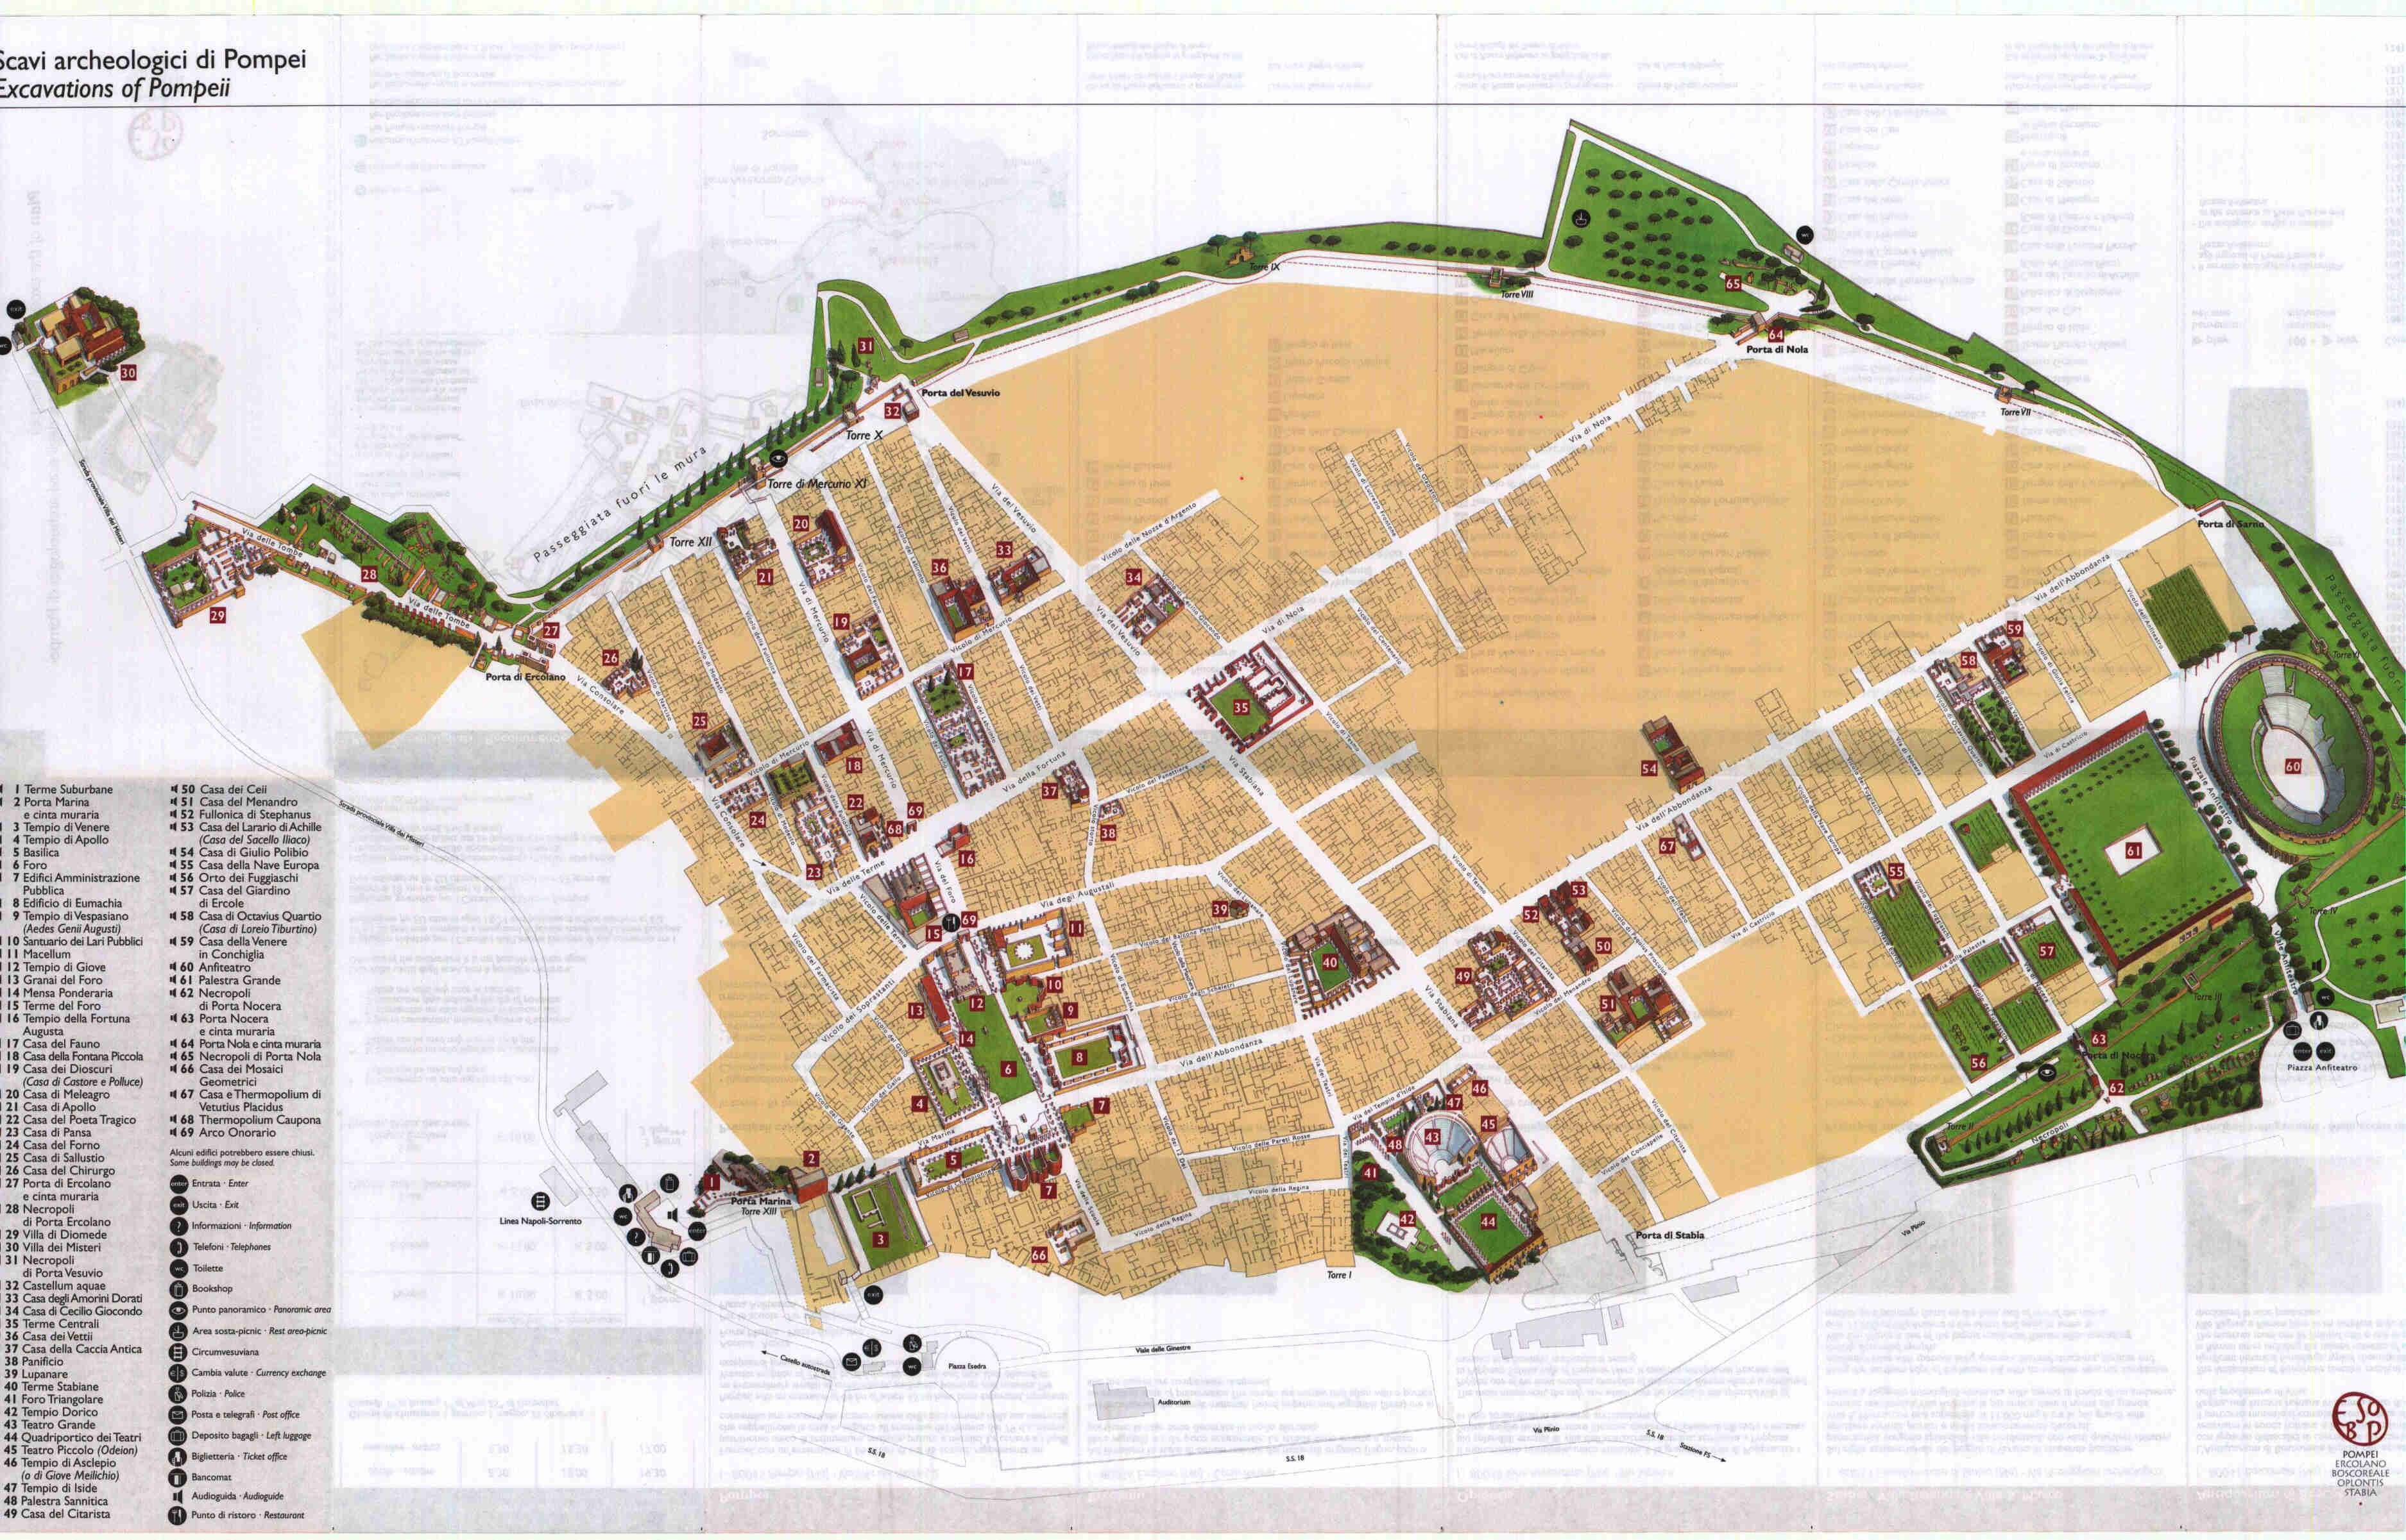 Free Map Of Italy.Large Pompei Maps For Free Download High Resolution And Detailed